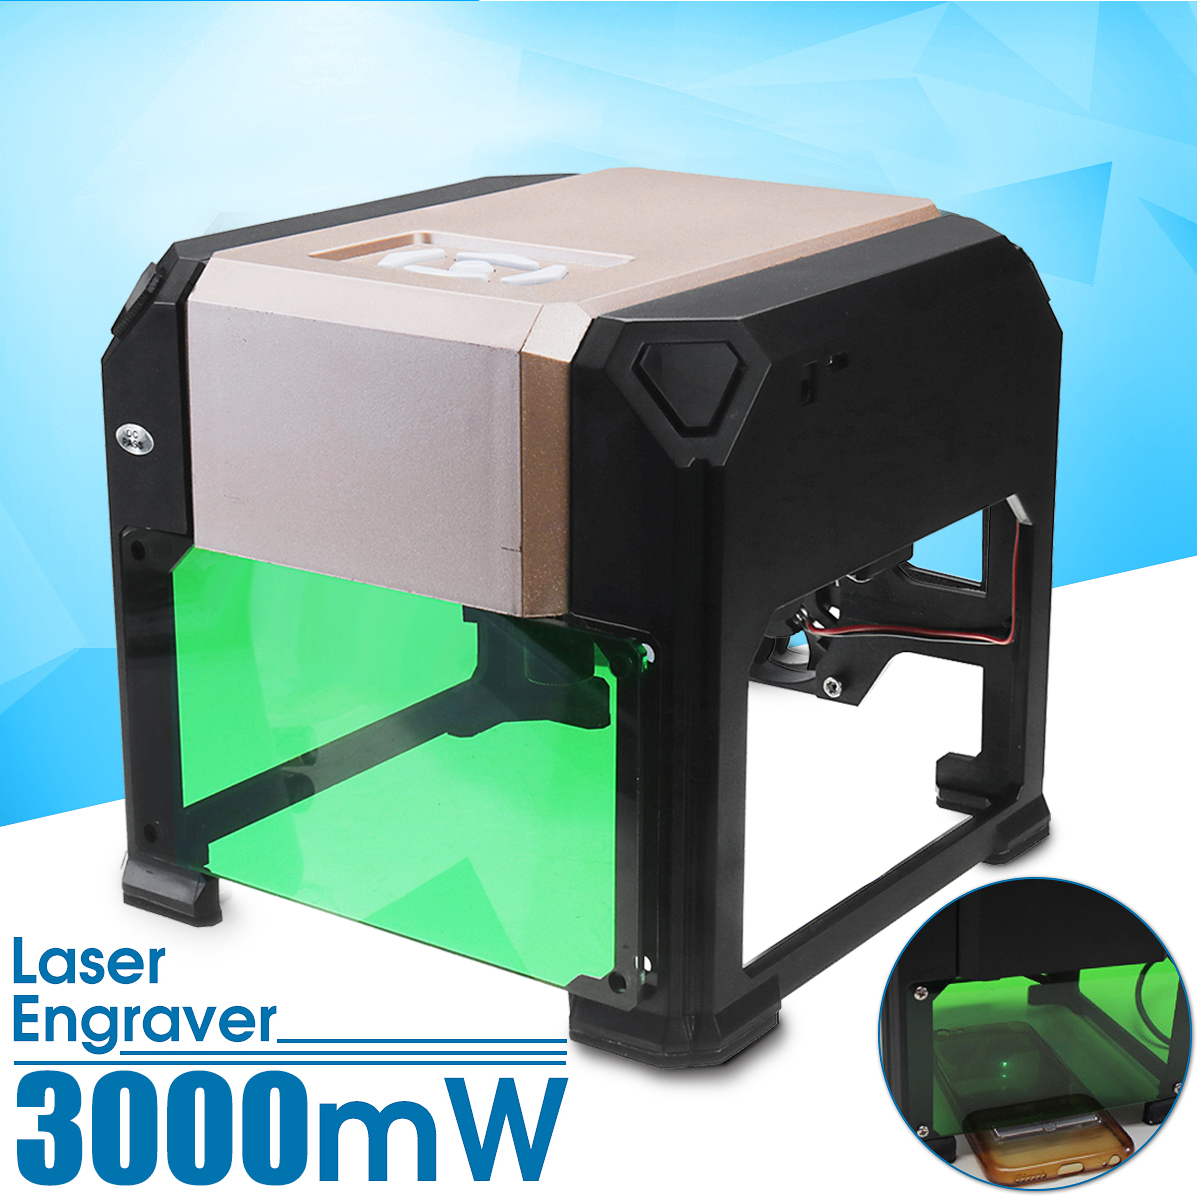 все цены на 3000mW USB CNC Laser Engraver Printer Cutter Carver DIY Logo Mark Laser Cut Carving Machine Laser 80x80mm Engraving Range онлайн